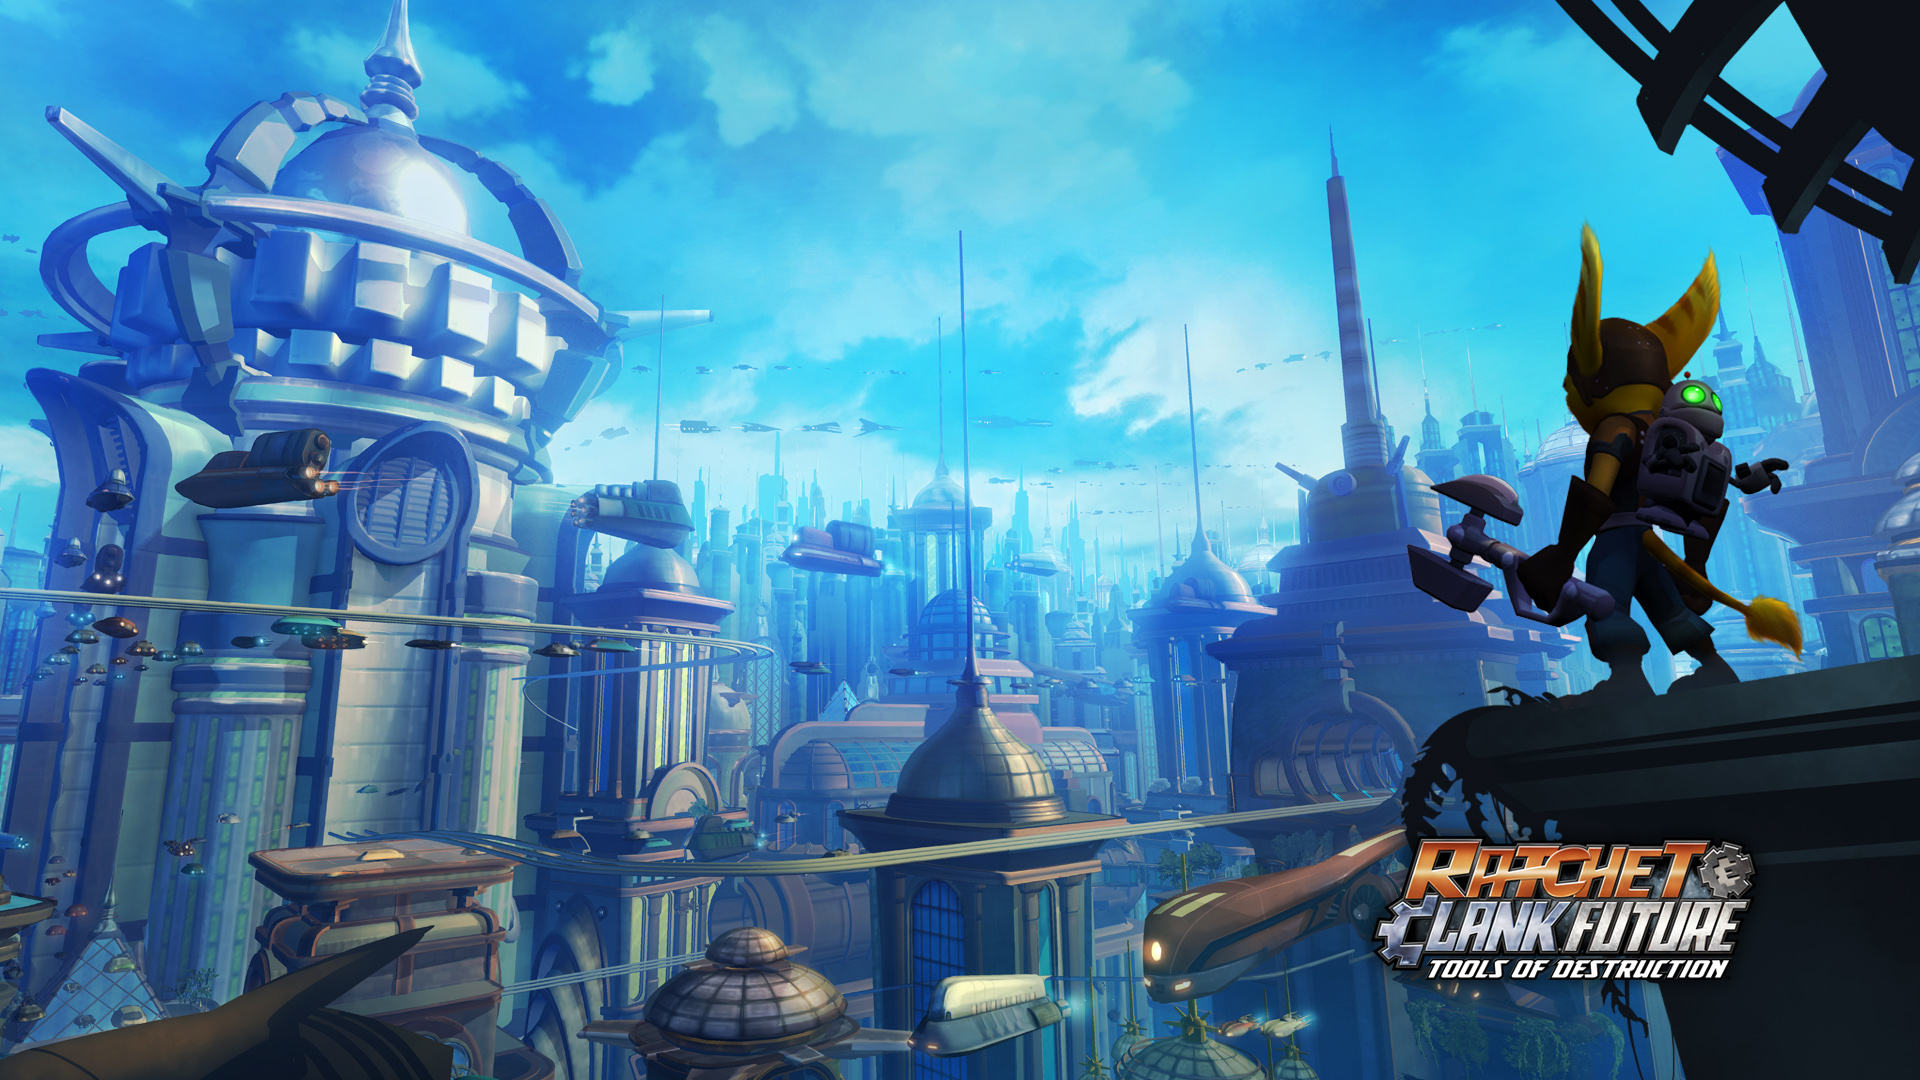 Ratchet and Clank Future: Tools of Destruction Wallpapers